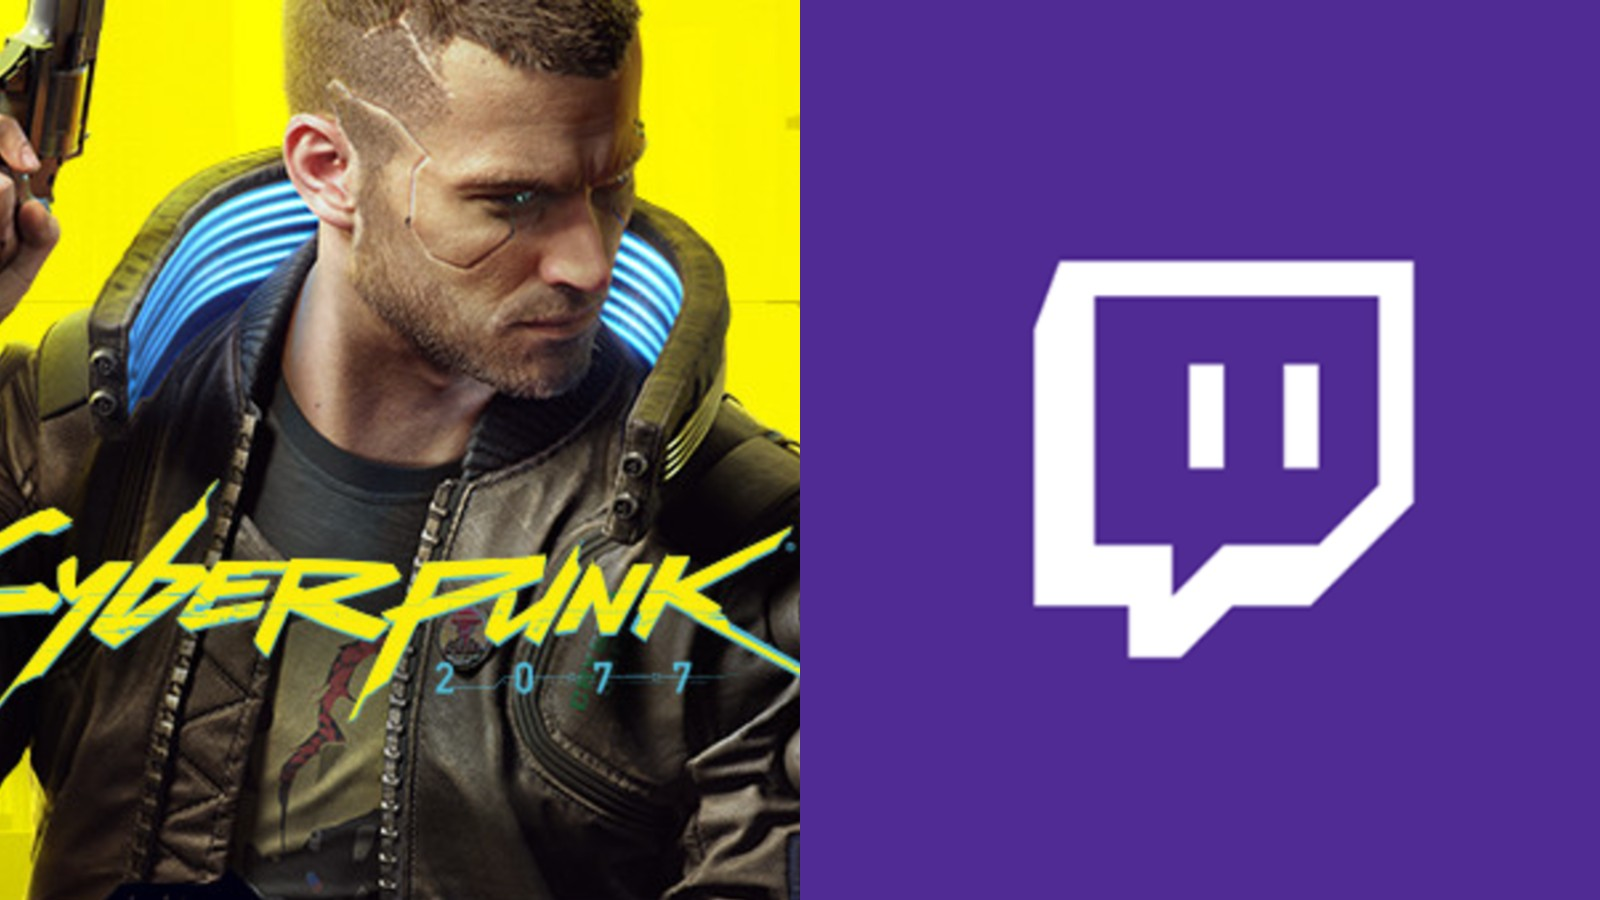 Cyberpunk 2077 art next to Twitch logo